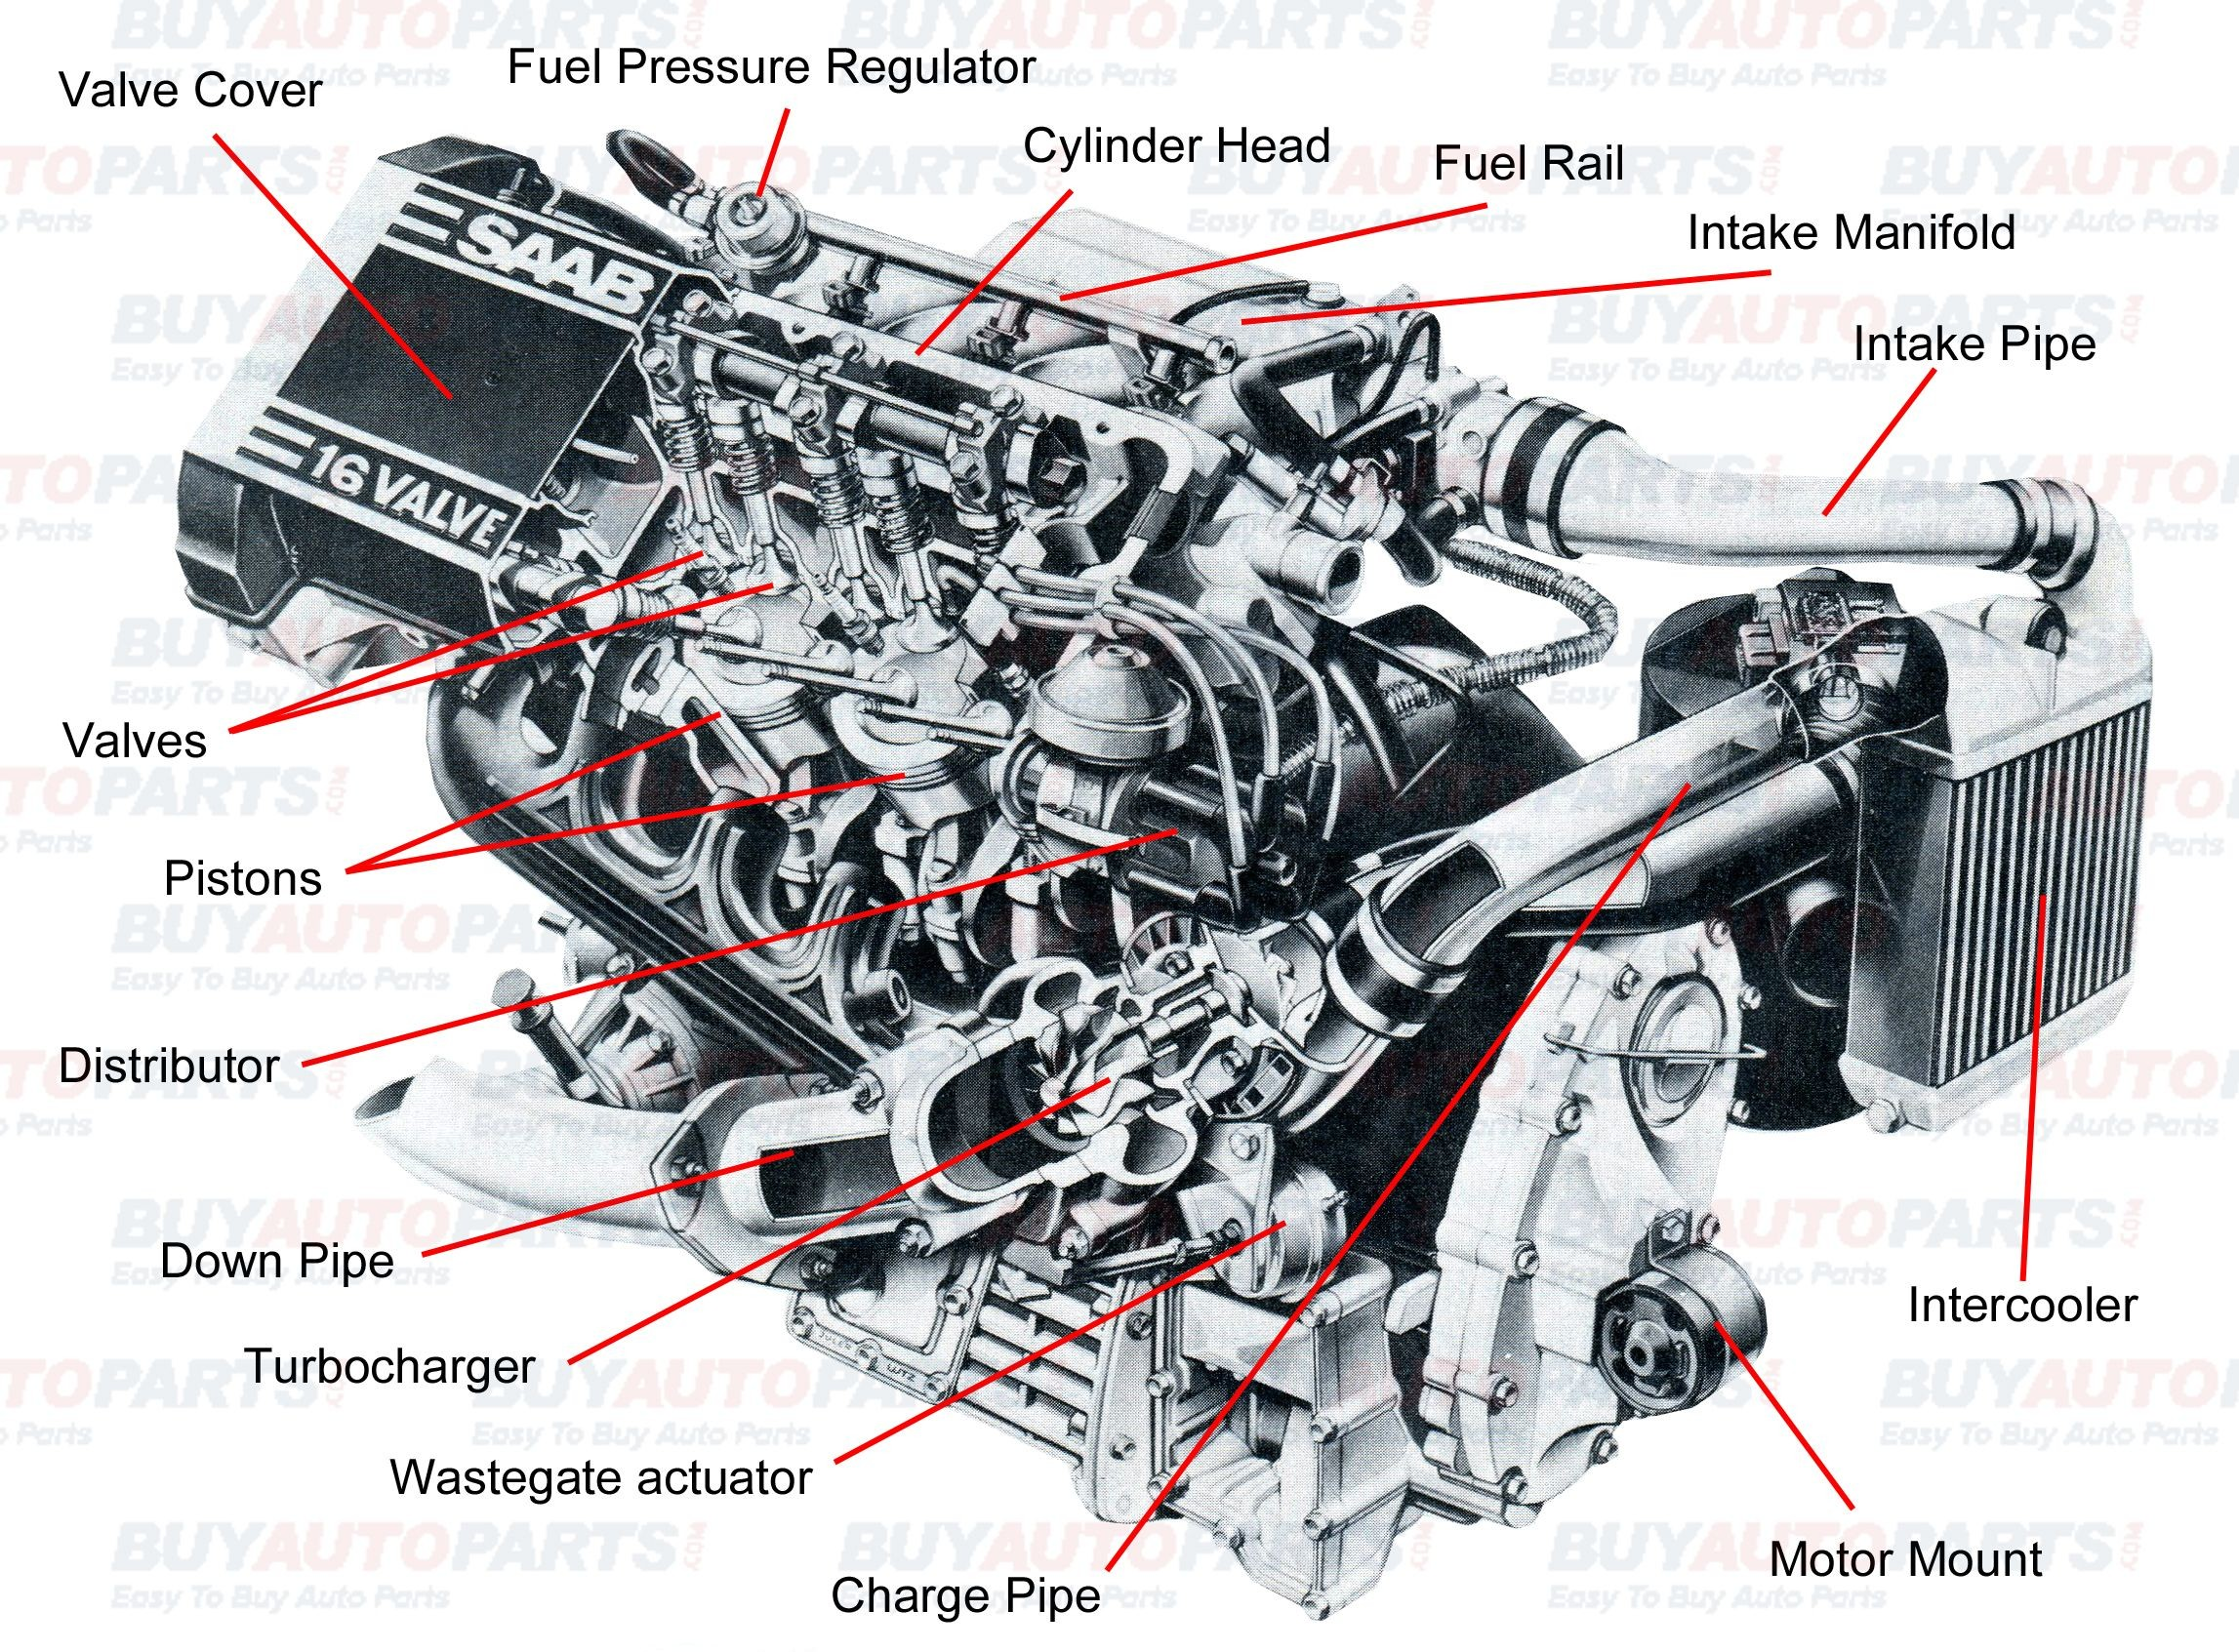 Parts Of Car Engine Diagram Pin by Jimmiejanet Testellamwfz On What Does An Engine with Turbo